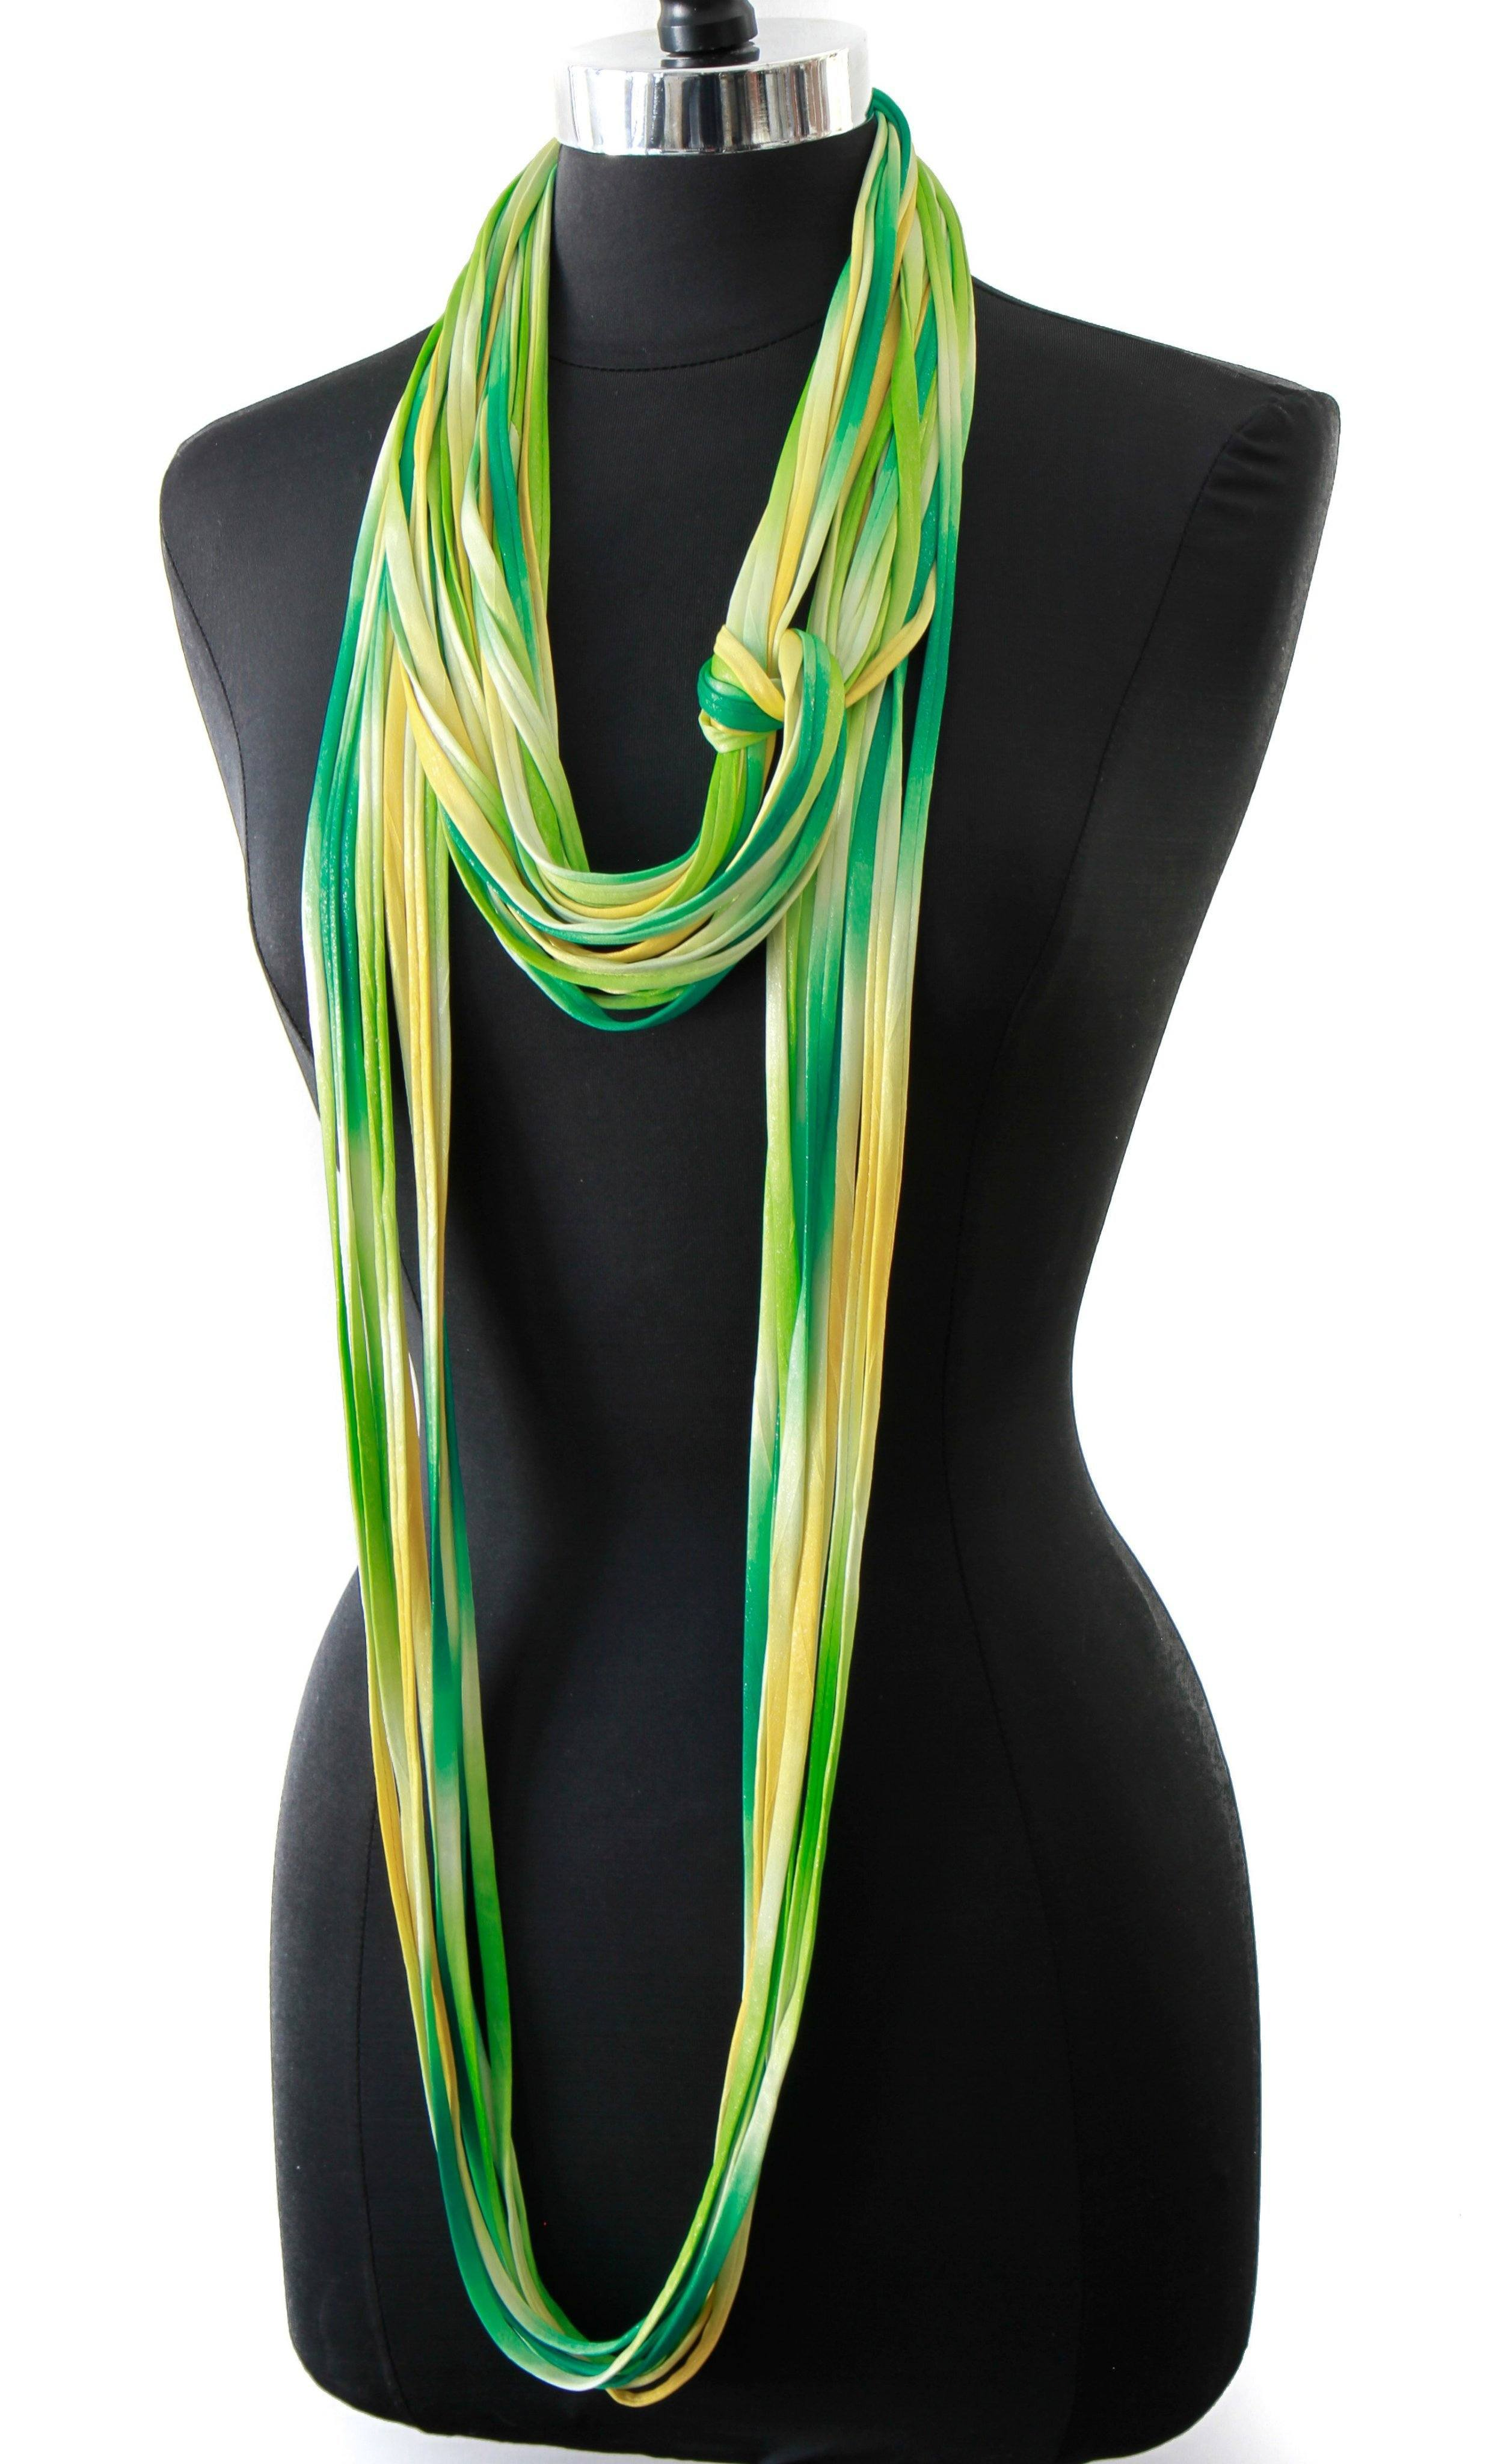 fd2d0f8944630 Infinity Scarf in Yellow and Green 'Canary' - Necknots